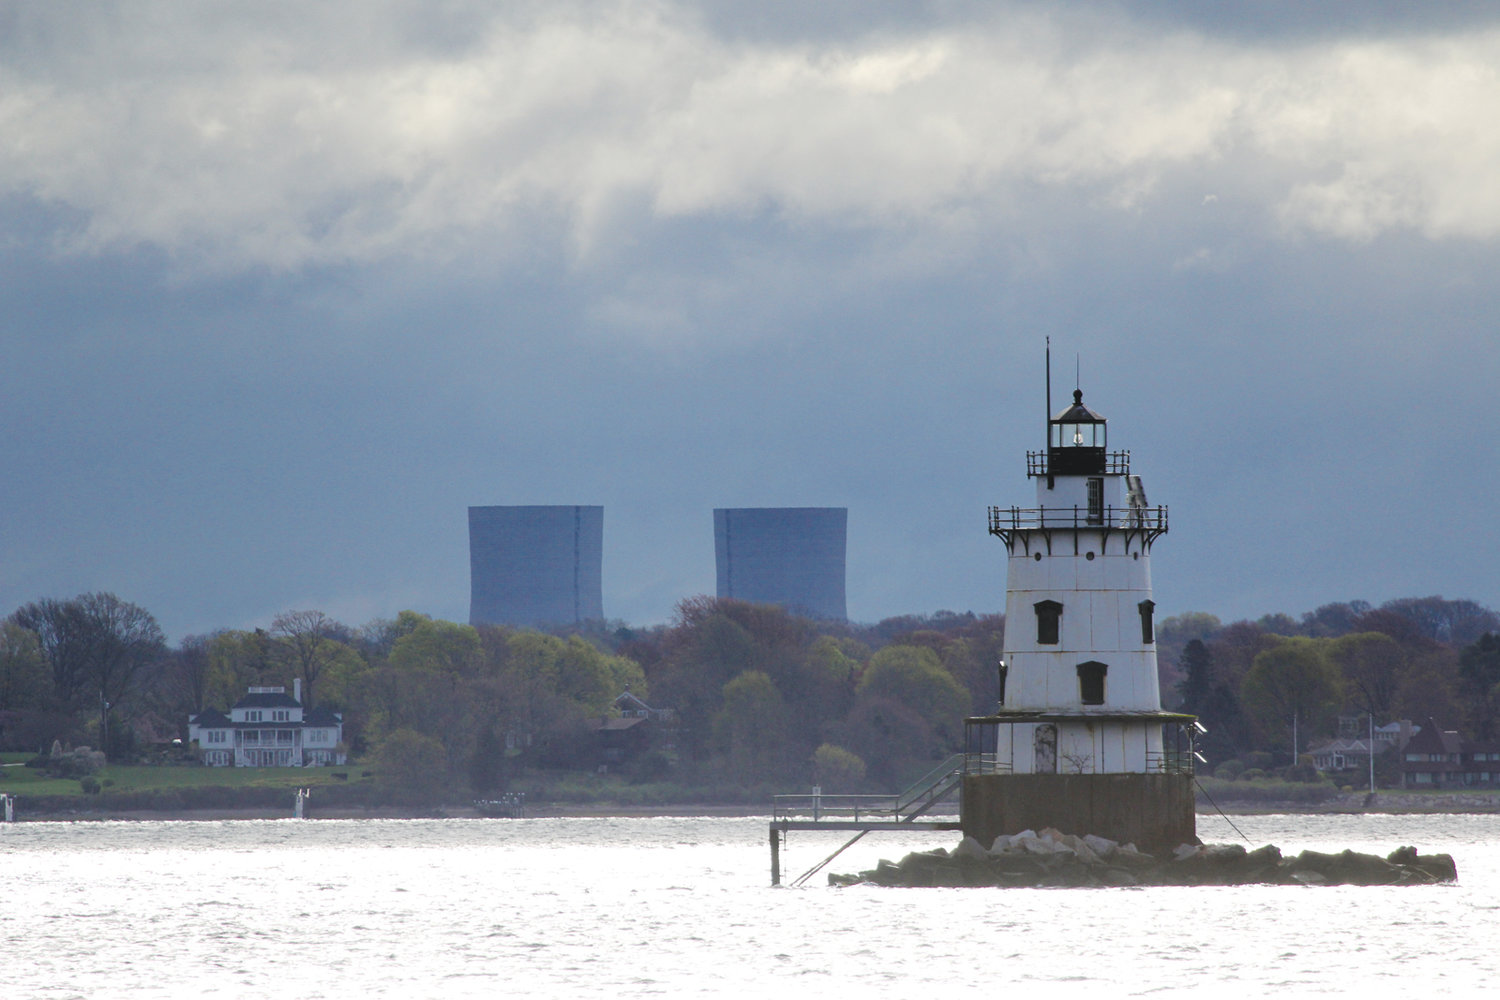 HERE NOW, GONE IN SECONDS: These photos by Ginny McGovern show the towers as seen from Conimicut Point before and as they came down.